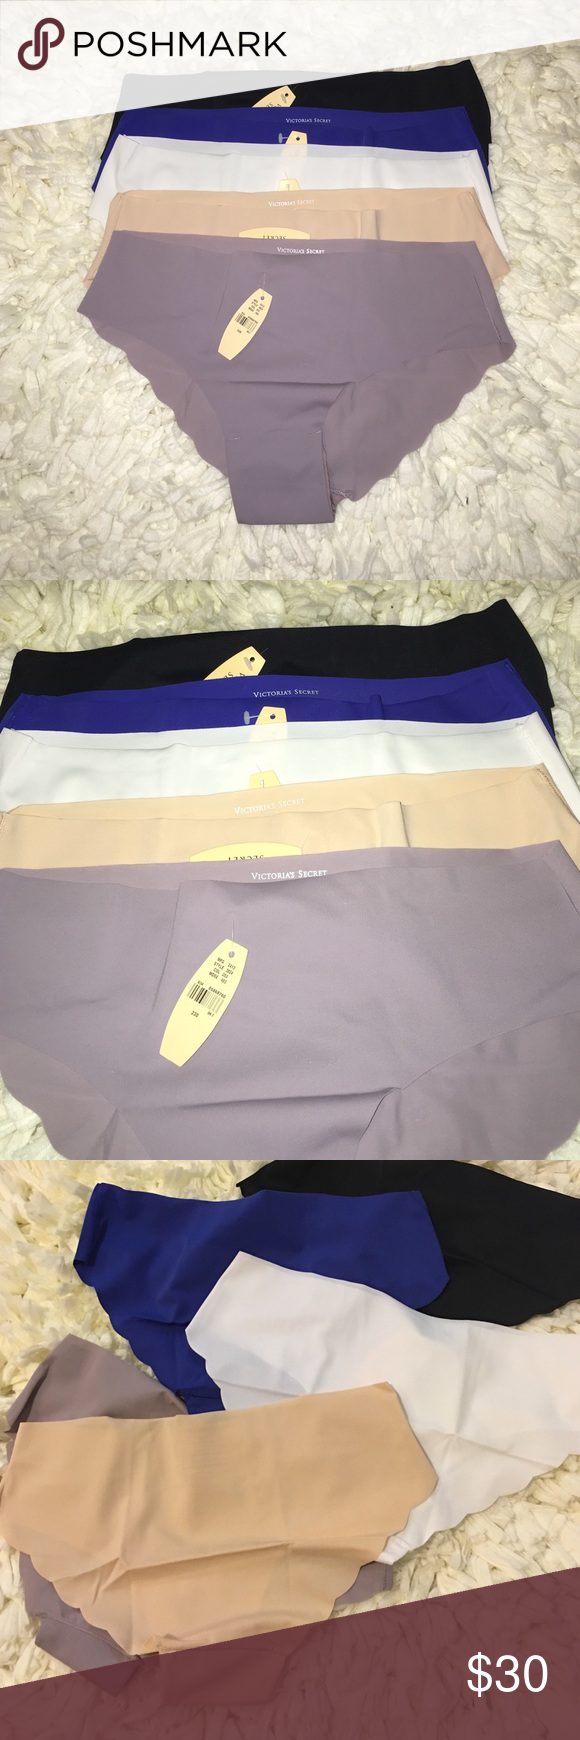 Set of 5 No Show Size Large Panties Brand new with tags, Victoria Secret Panties. Stretchy and super soft! Price is firm unless bundled! Colors are: plum, white, black, blue and nude Victoria's Secret Intimates & Sleepwear Panties